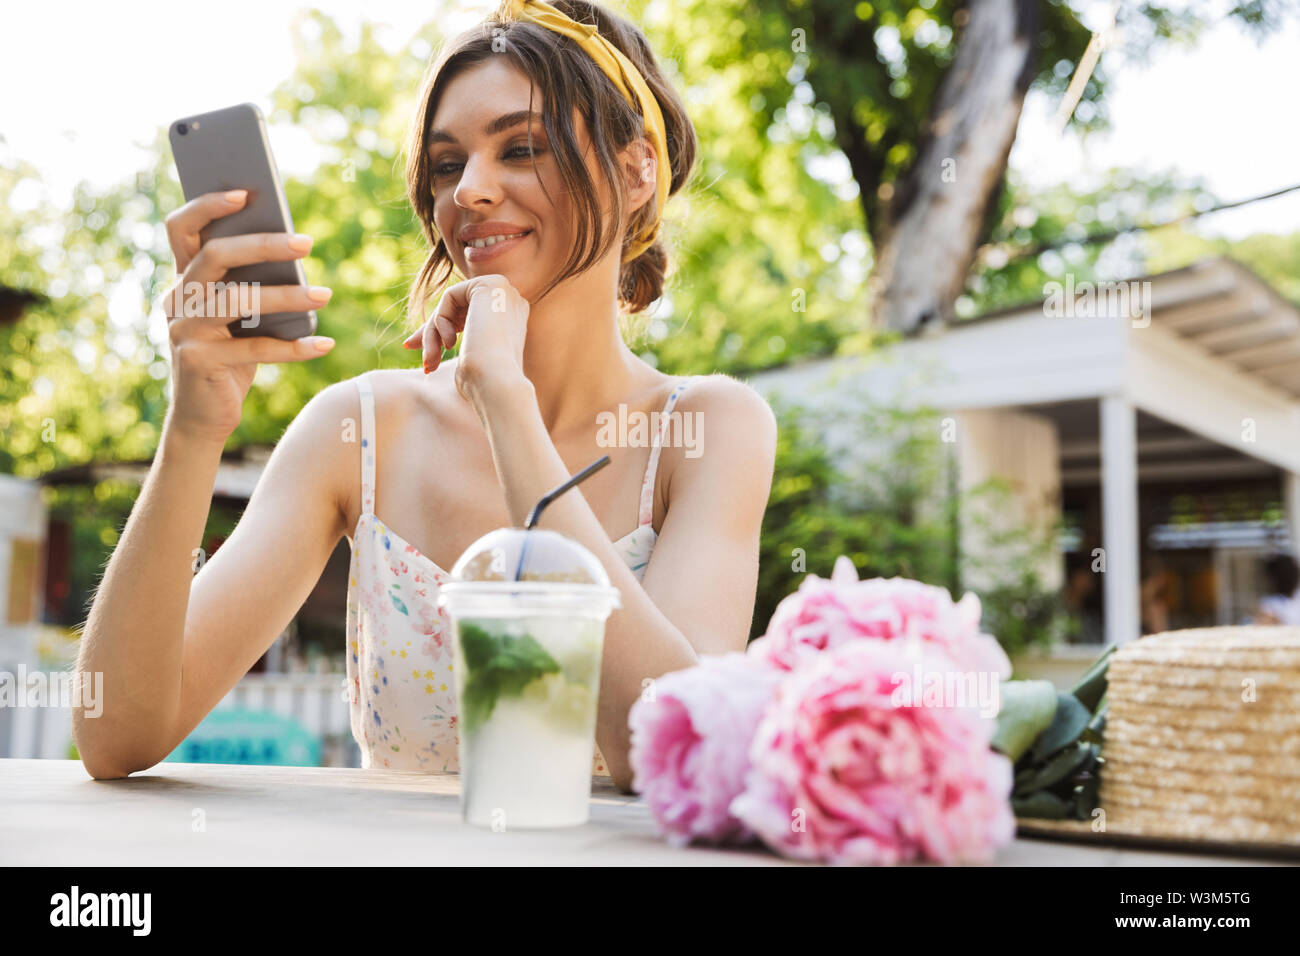 Image of a beautiful happy young amazing woman sitting at the table with flowers in green park using mobile phone. - Stock Image